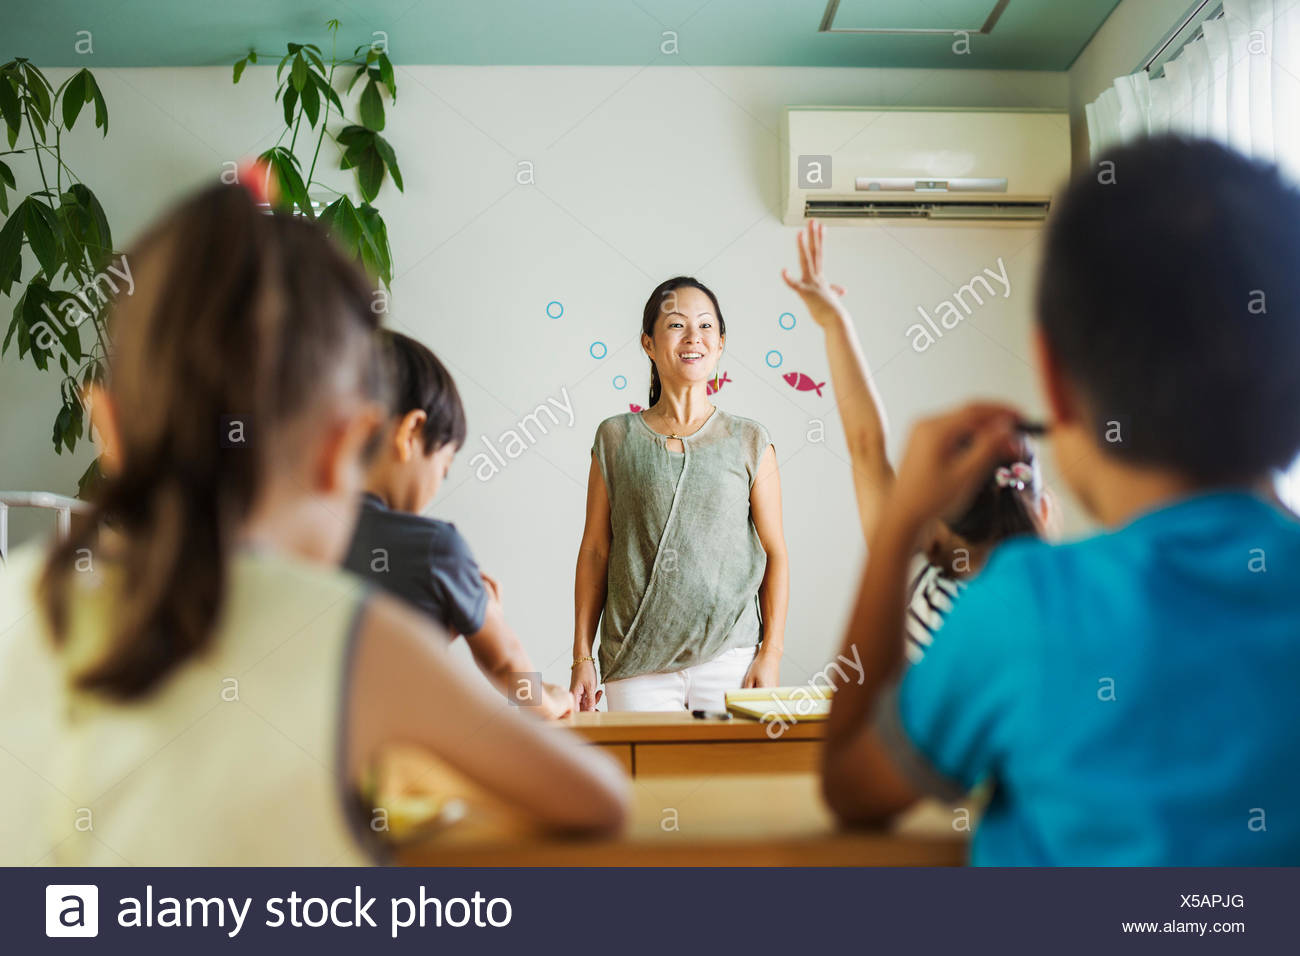 A group of children in a classroom, one with her hand up ready to answer a question. - Stock Image